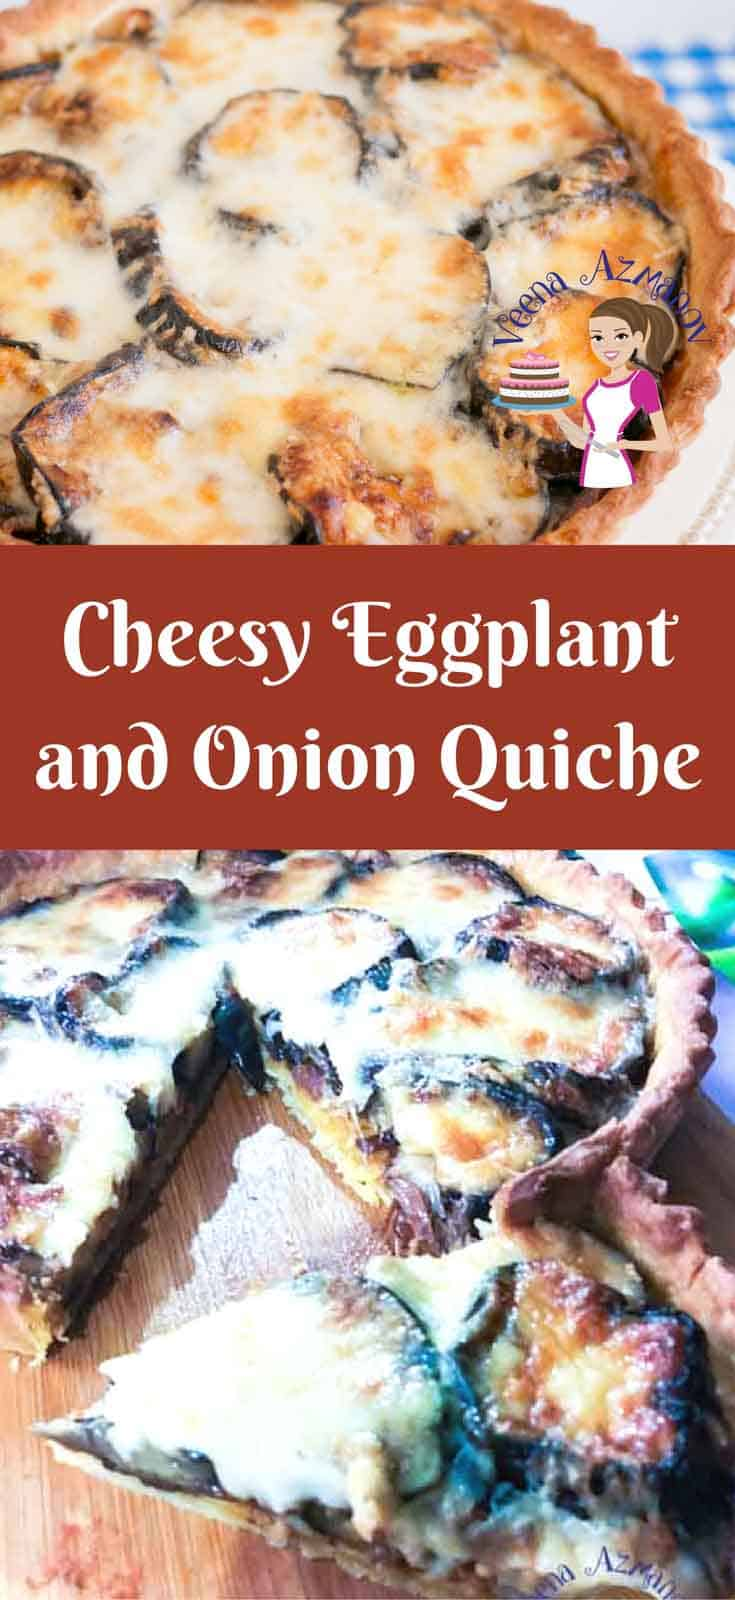 This cheesy eggplant and onion quiche is simple easy & super simple to make and uses grilled eggplant and grilled onions. It's a great make ahead dish, almost all components can be made the day before.